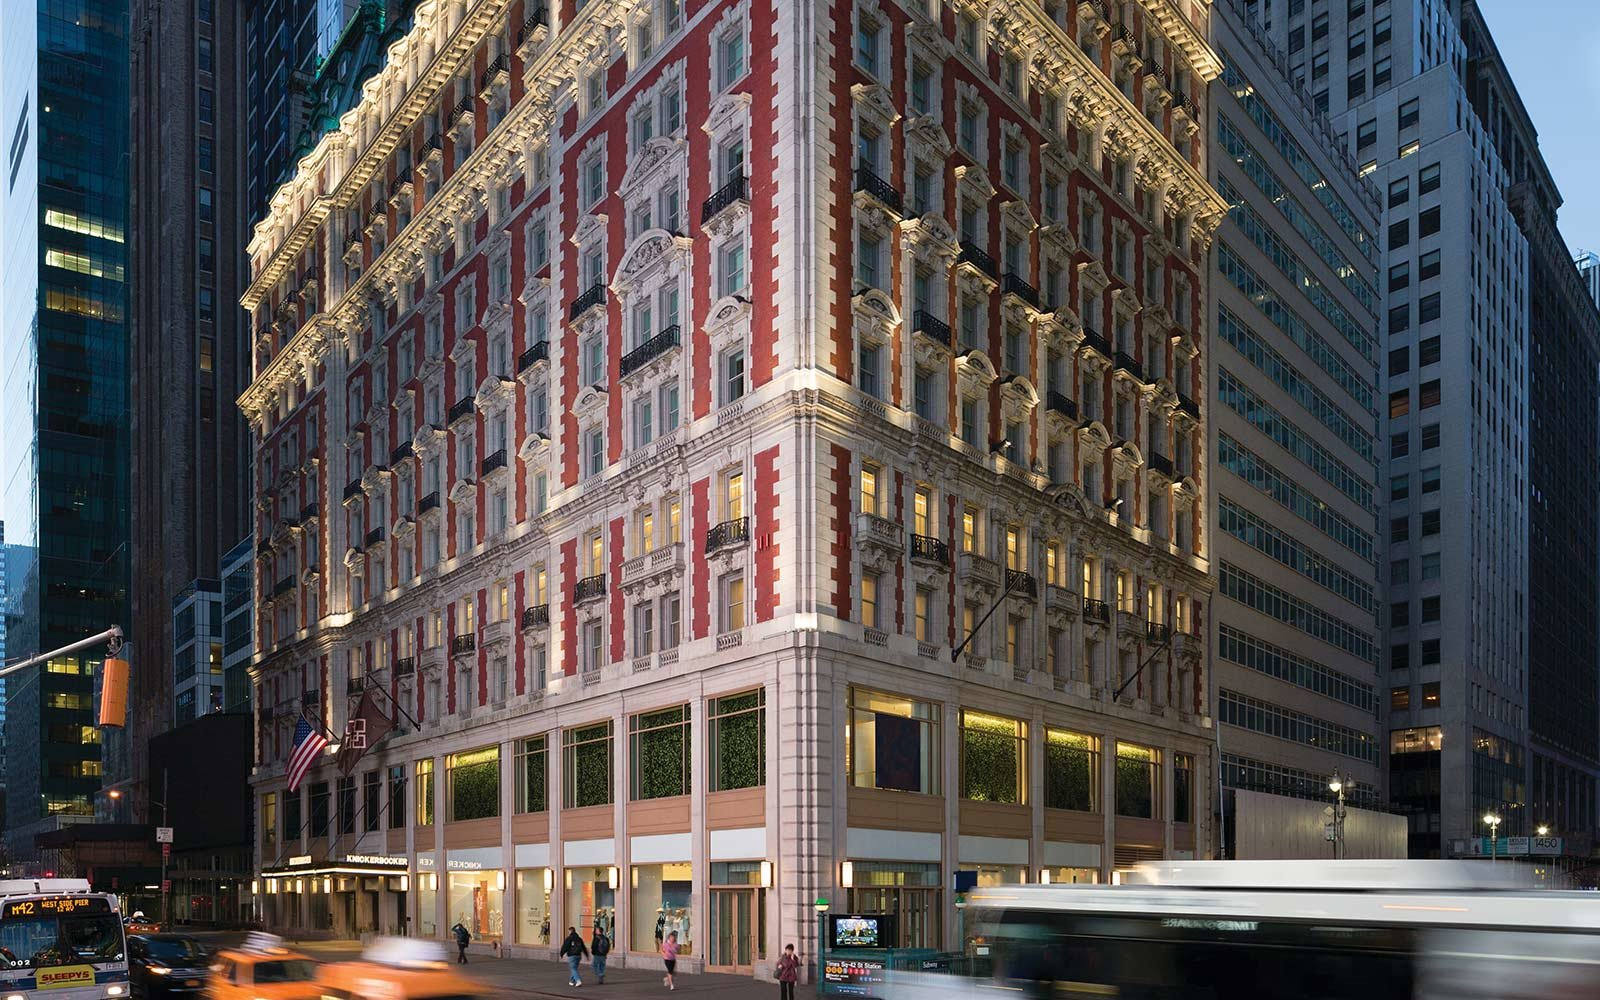 The Knickerbocker Hotel, New York City